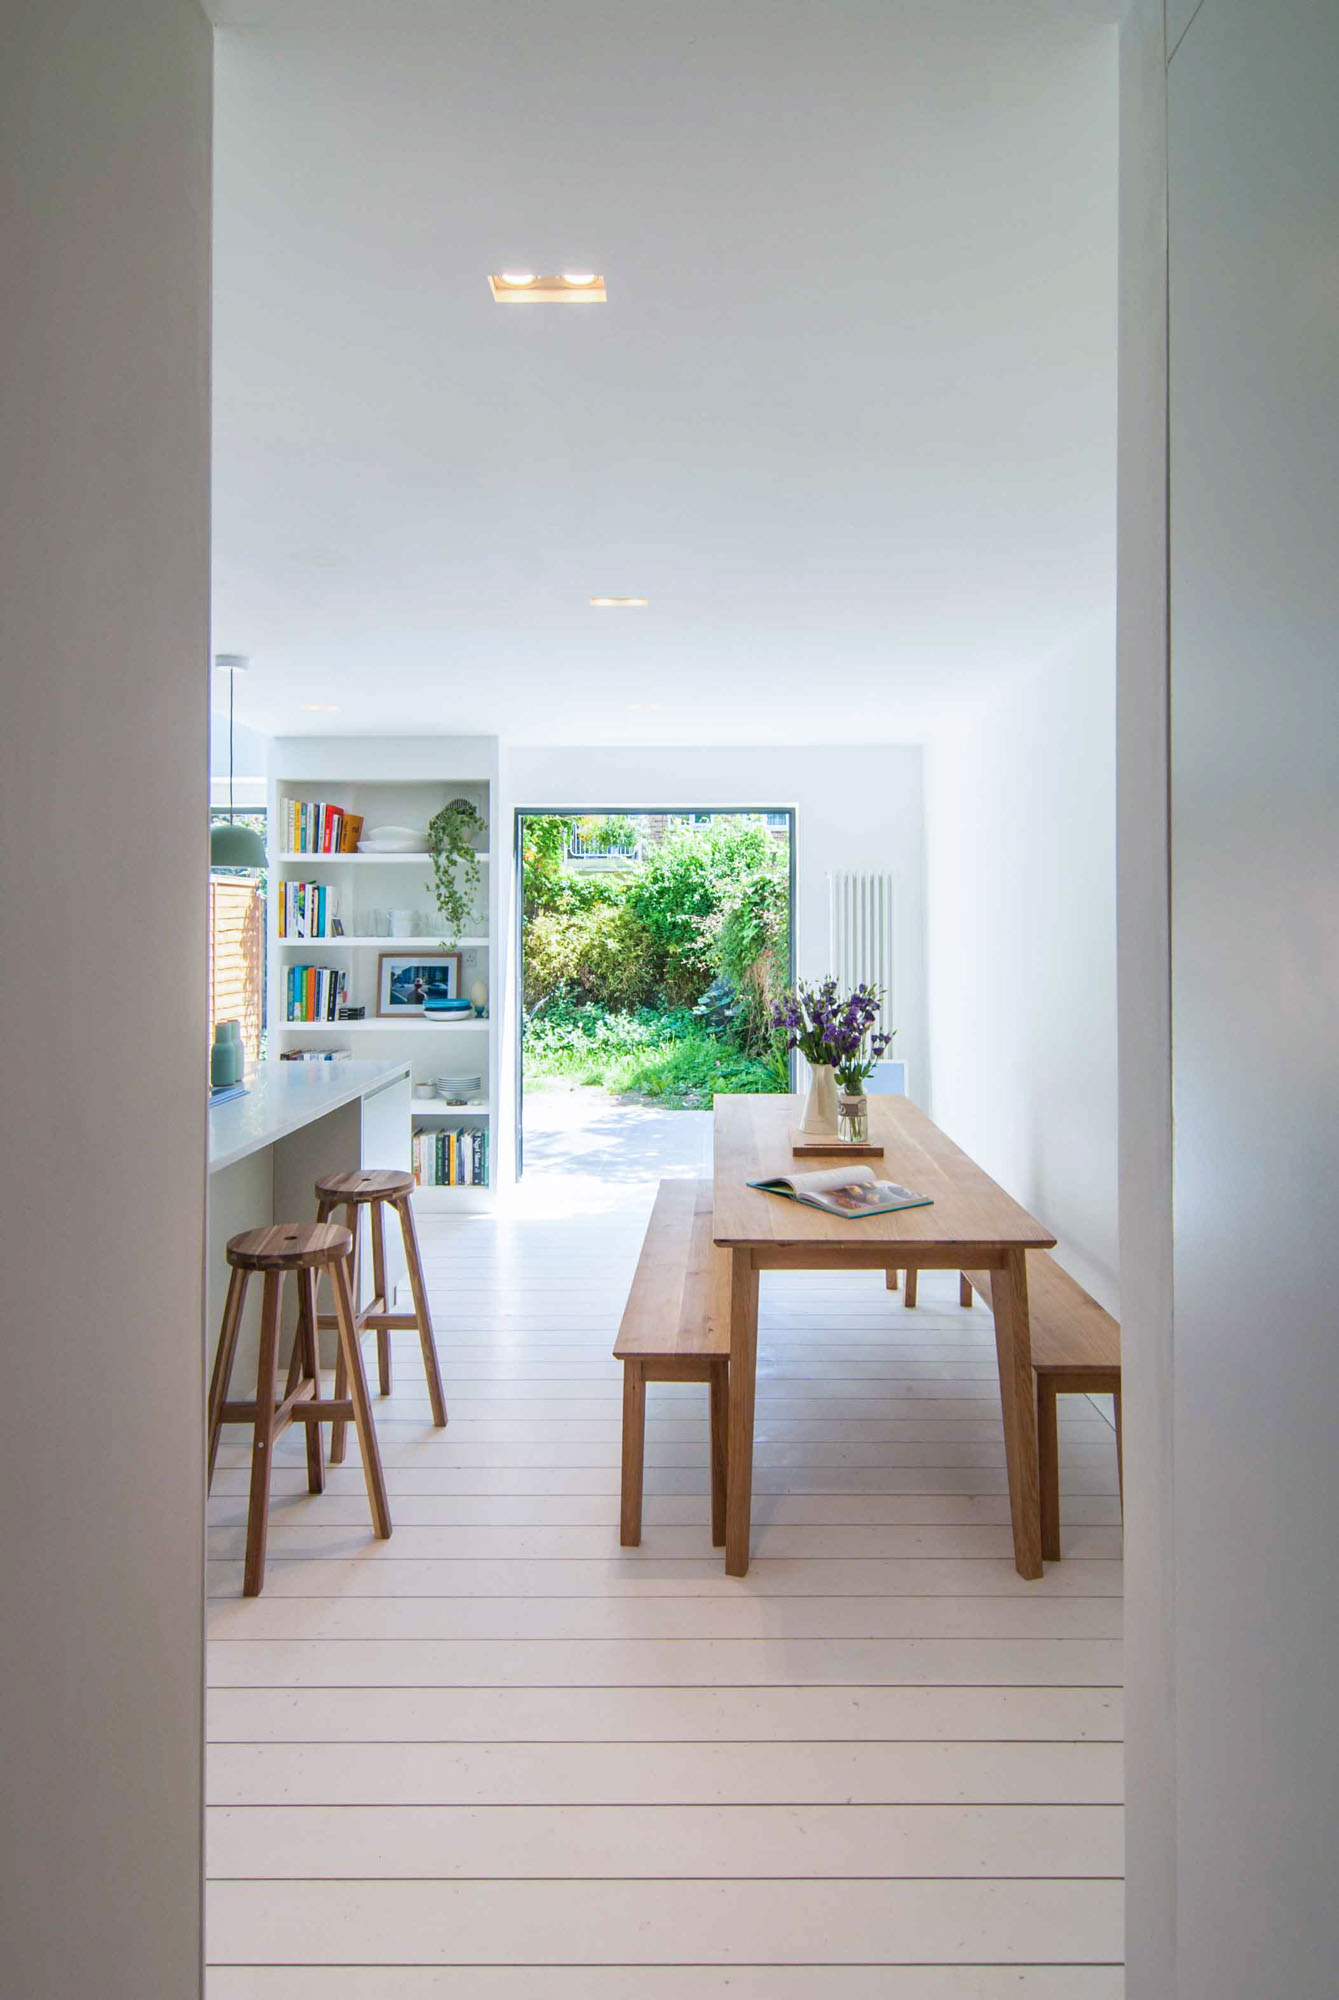 Photographer's House: View of the dining space opposite the kitchen overlooking a bespoke white bookshelf and large doors opening up to the beautiful garden.